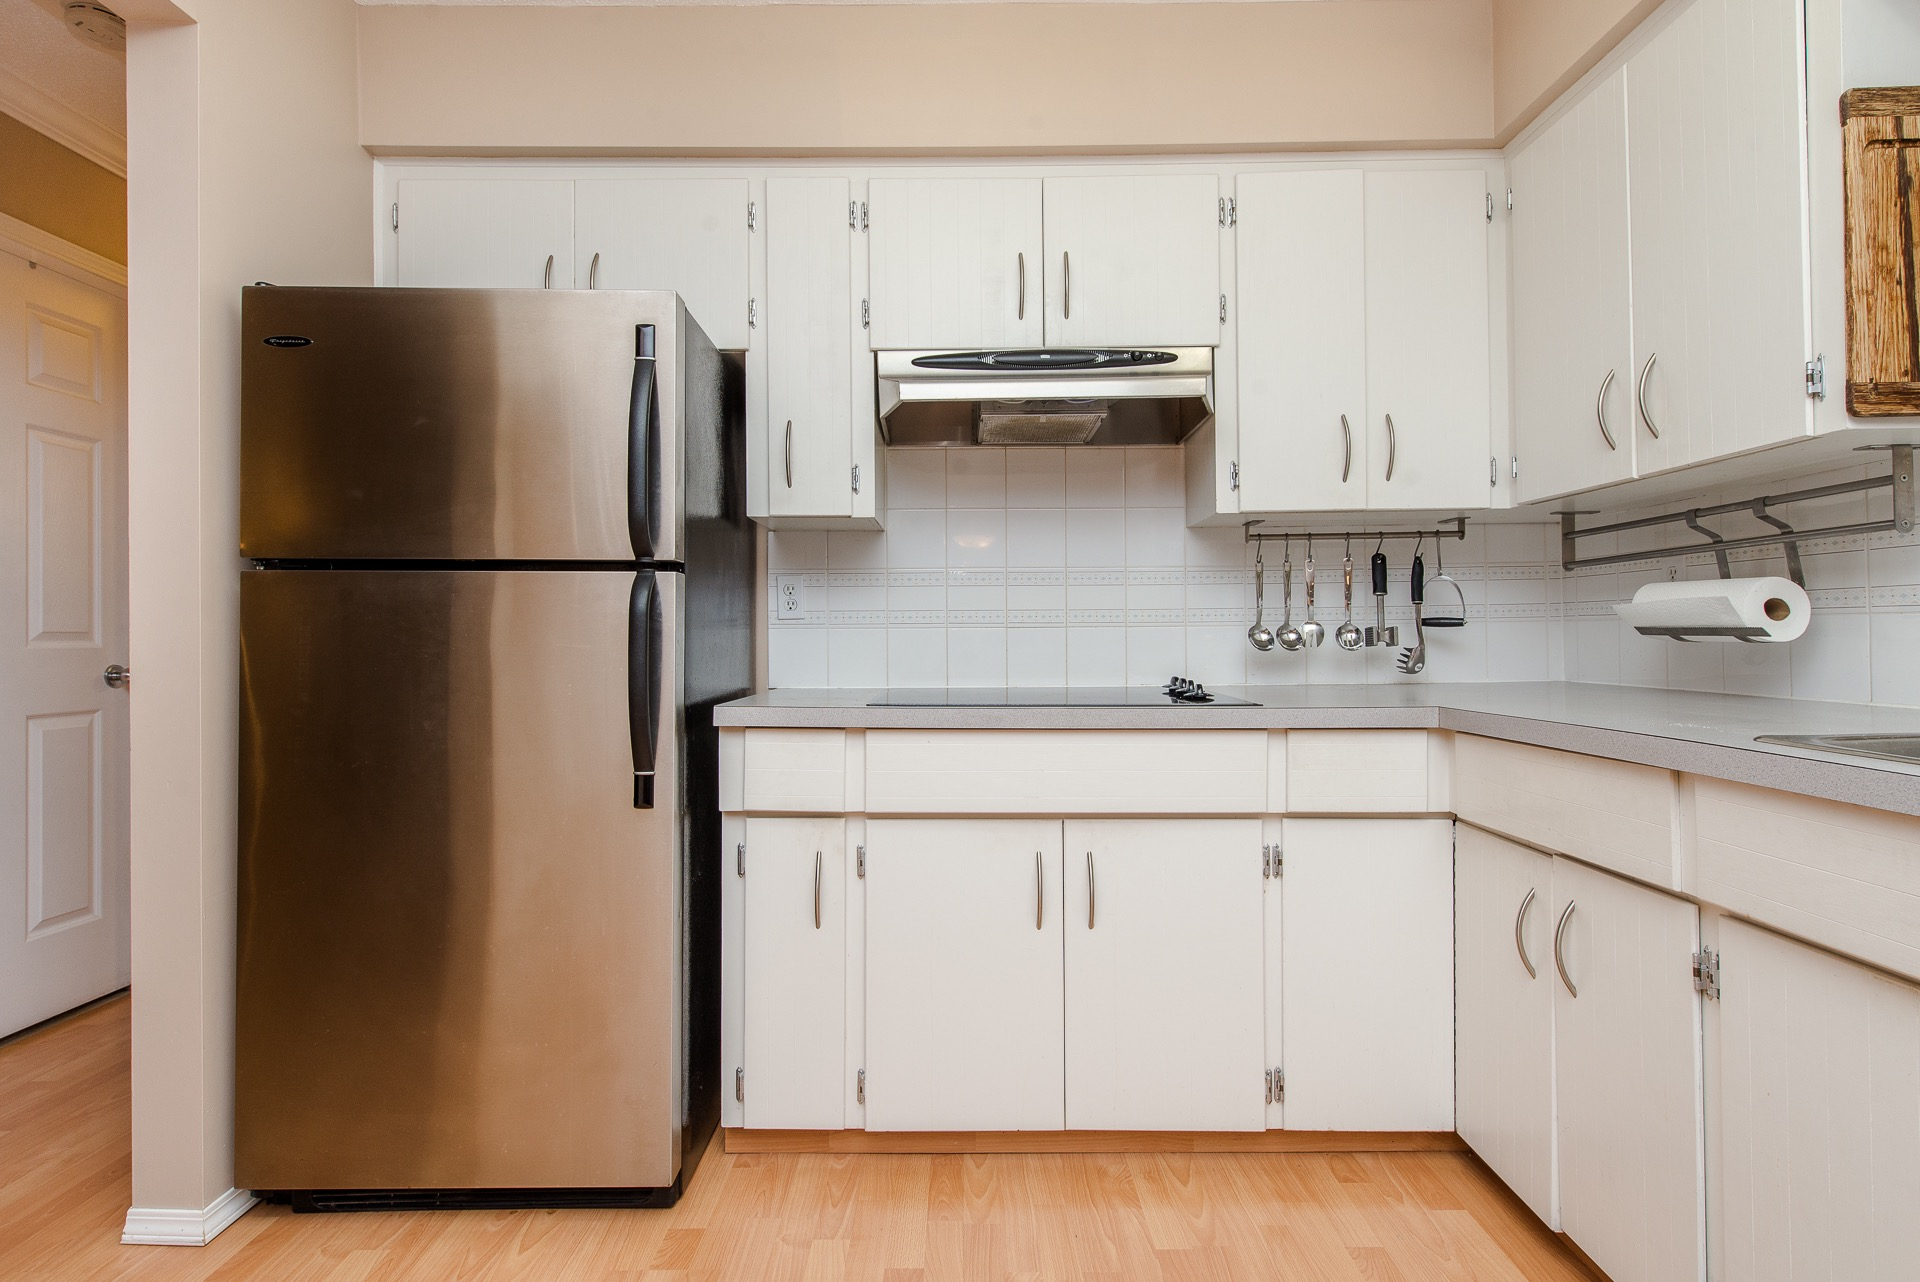 what is the average cost of kitchen cabinets bhinder sharma 32921 gatefield avenue abbotsford mls 28288